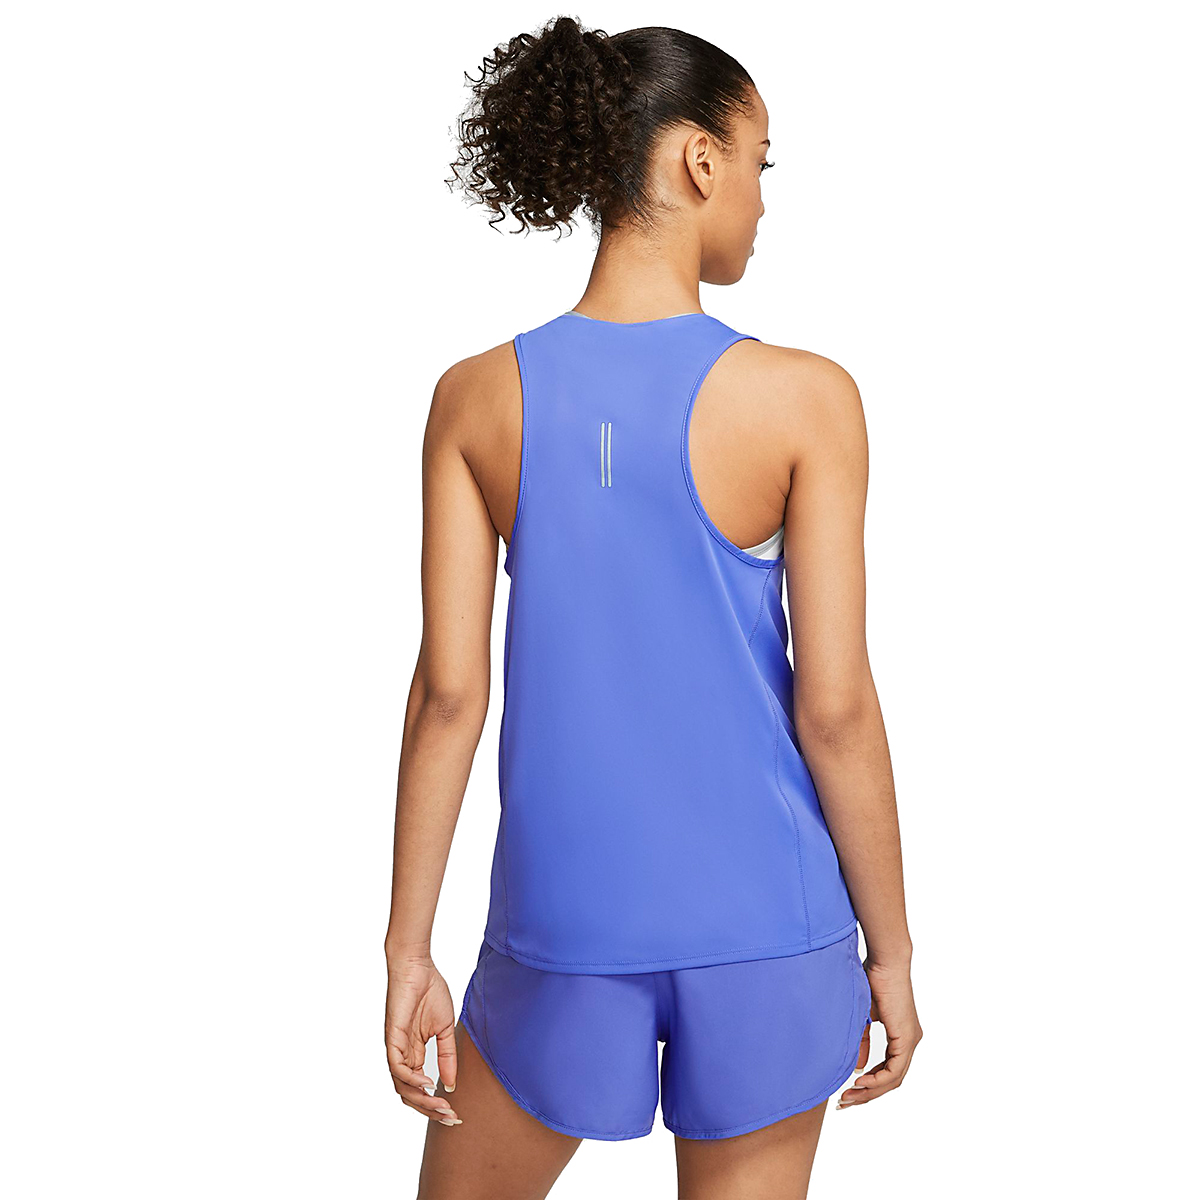 Women's Nike City Sleek Running Tank - Color: Sapphire - Size: XS, Sapphire, large, image 2